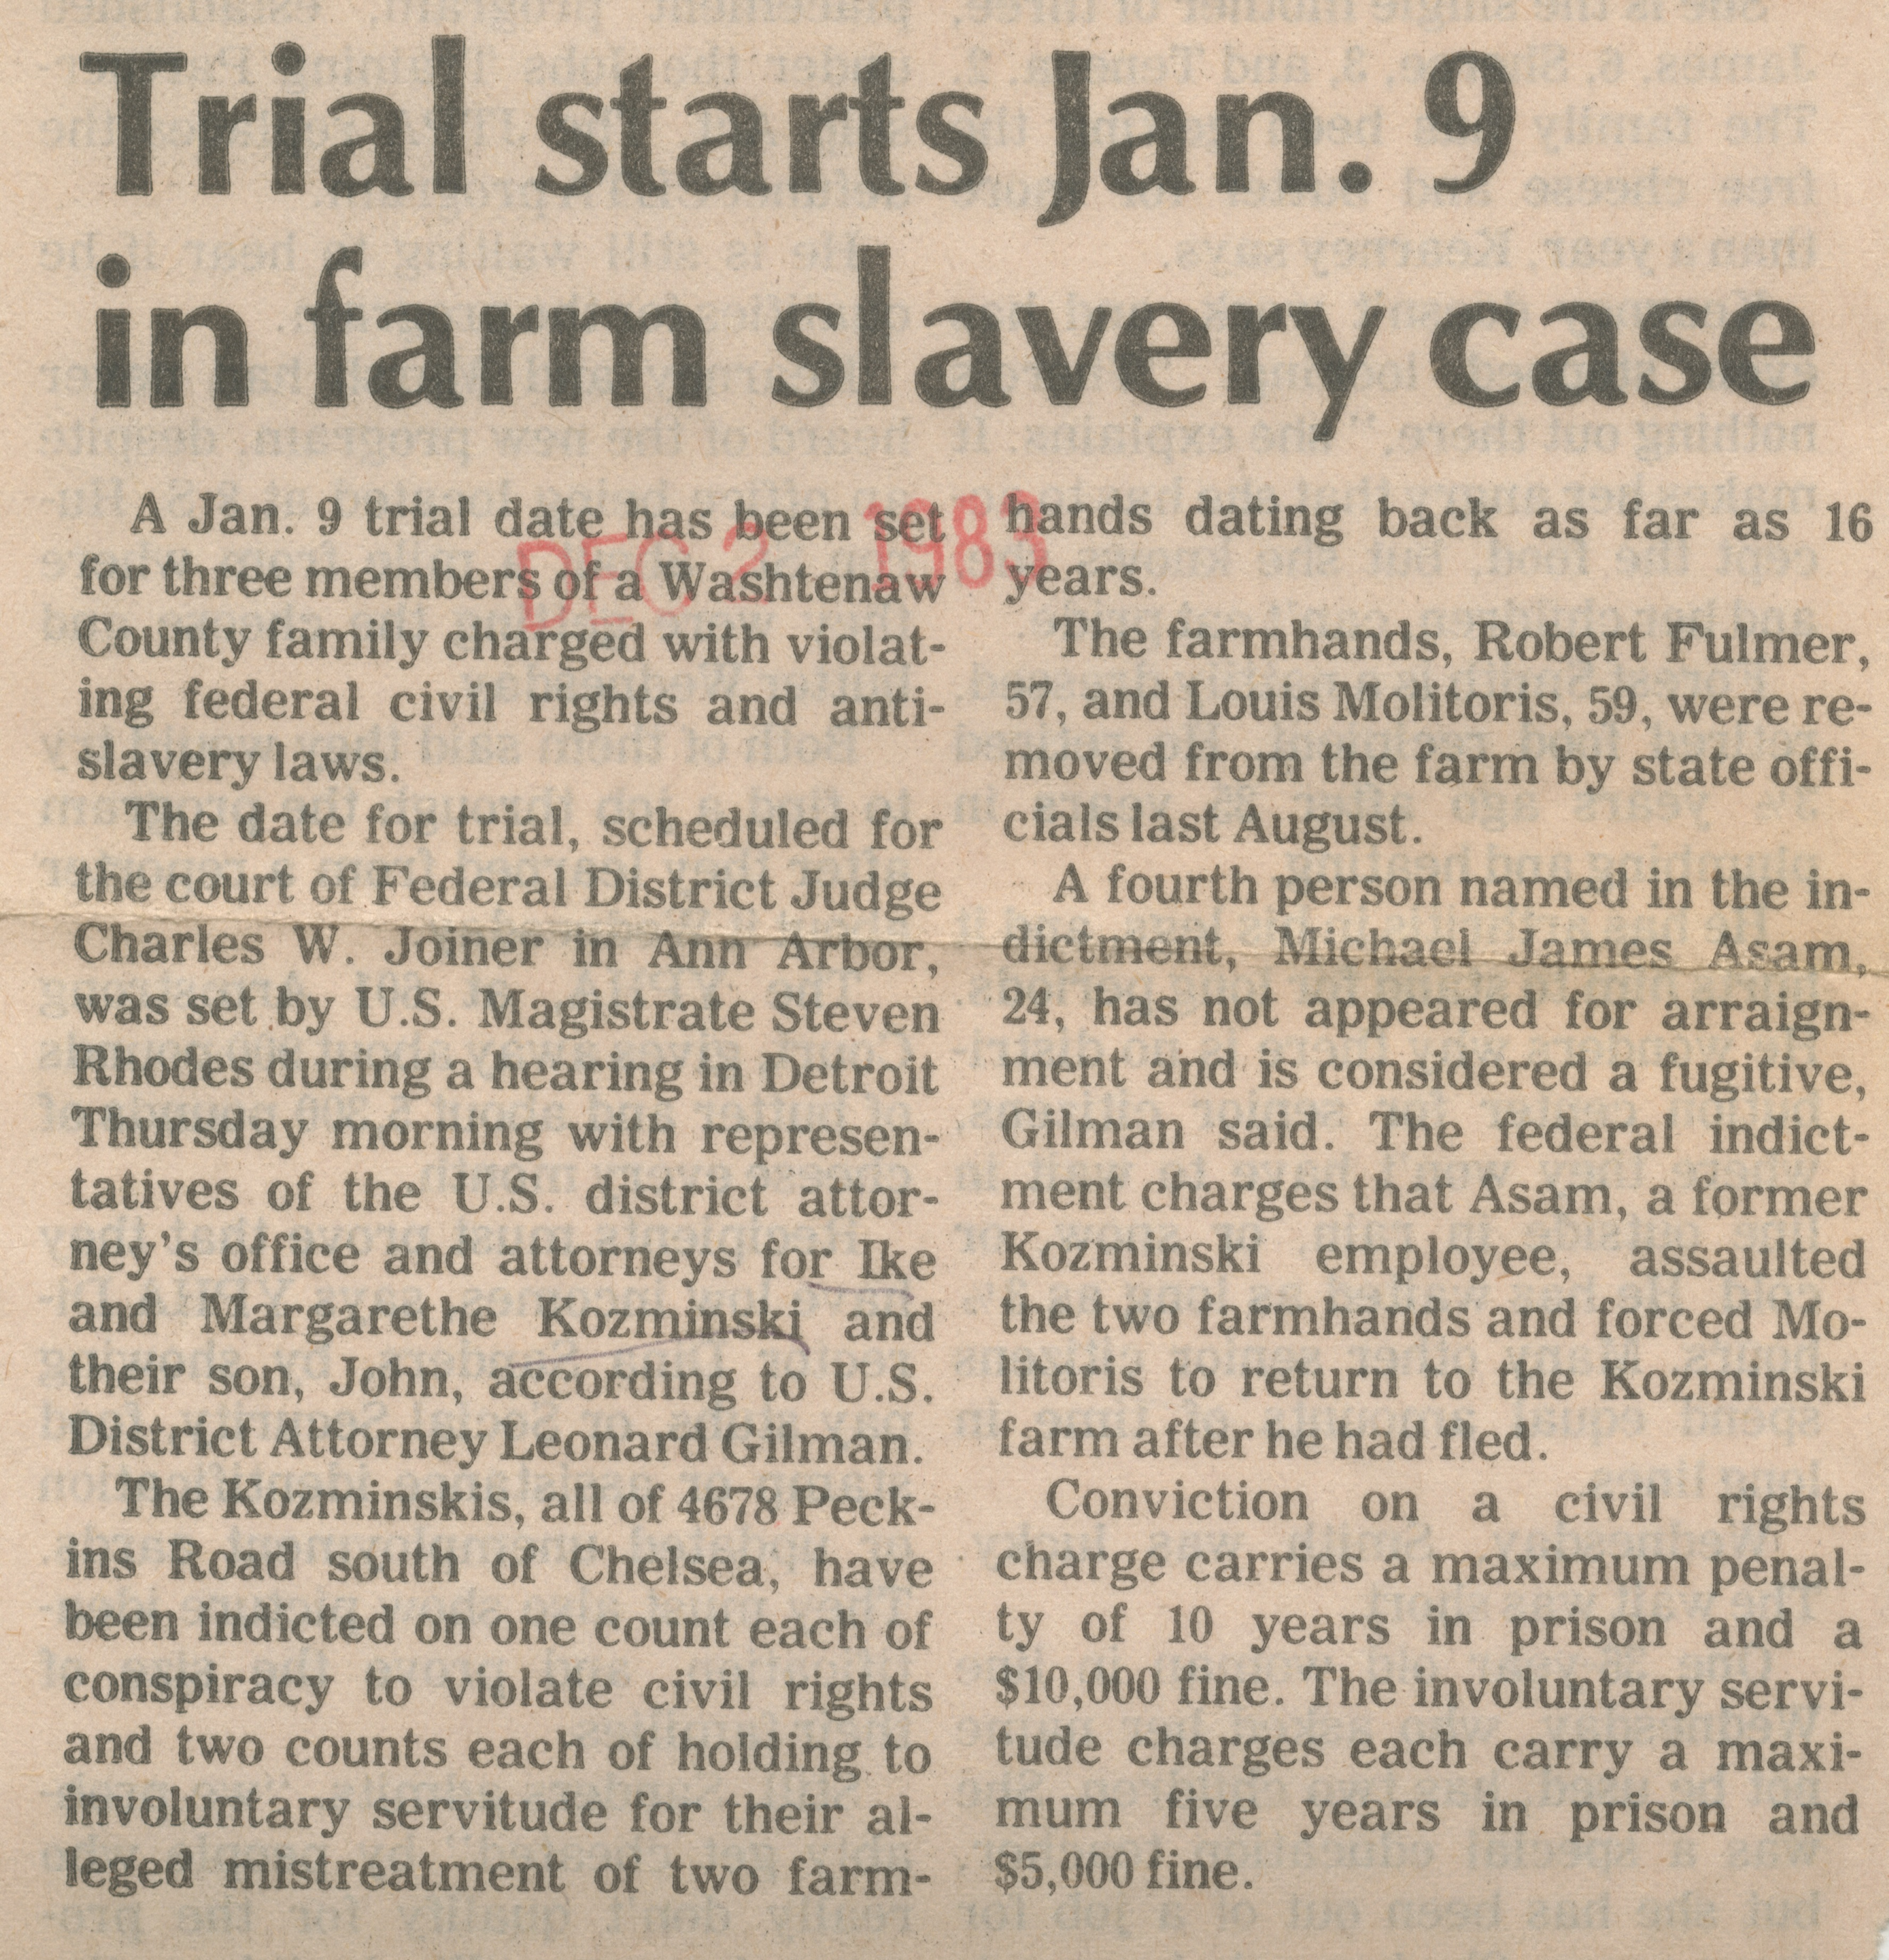 Trial starts Jan. 9 in farm slavery case image